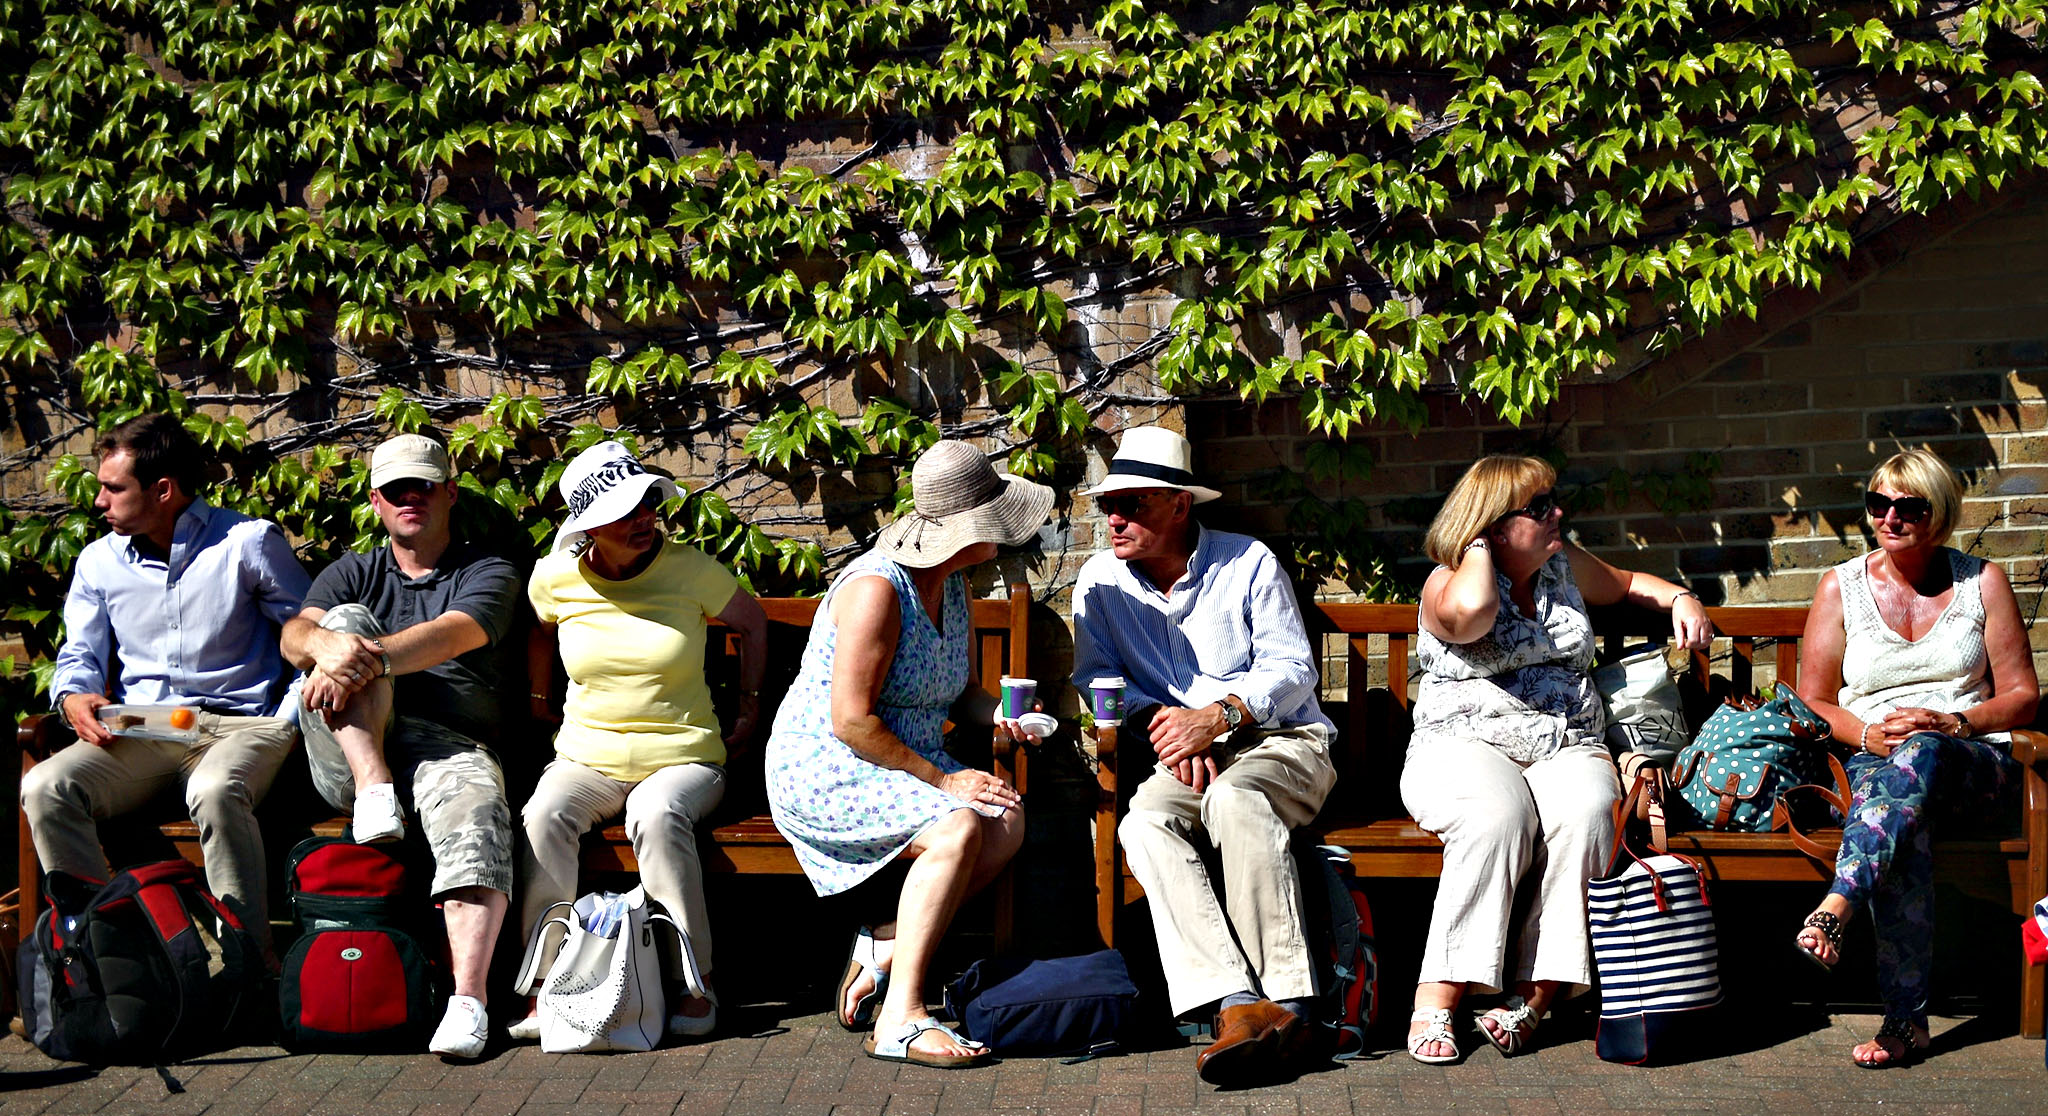 People relax in the sun as they queue to attend day 11 of the Wimbledon Lawn Tennis Championships at the All England Lawn Tennis and Croquet Club on July 10, 2015 in London, England. The 129th tournament to be hosted at Wimbledon is due to run for two weeks from Monday 29th June